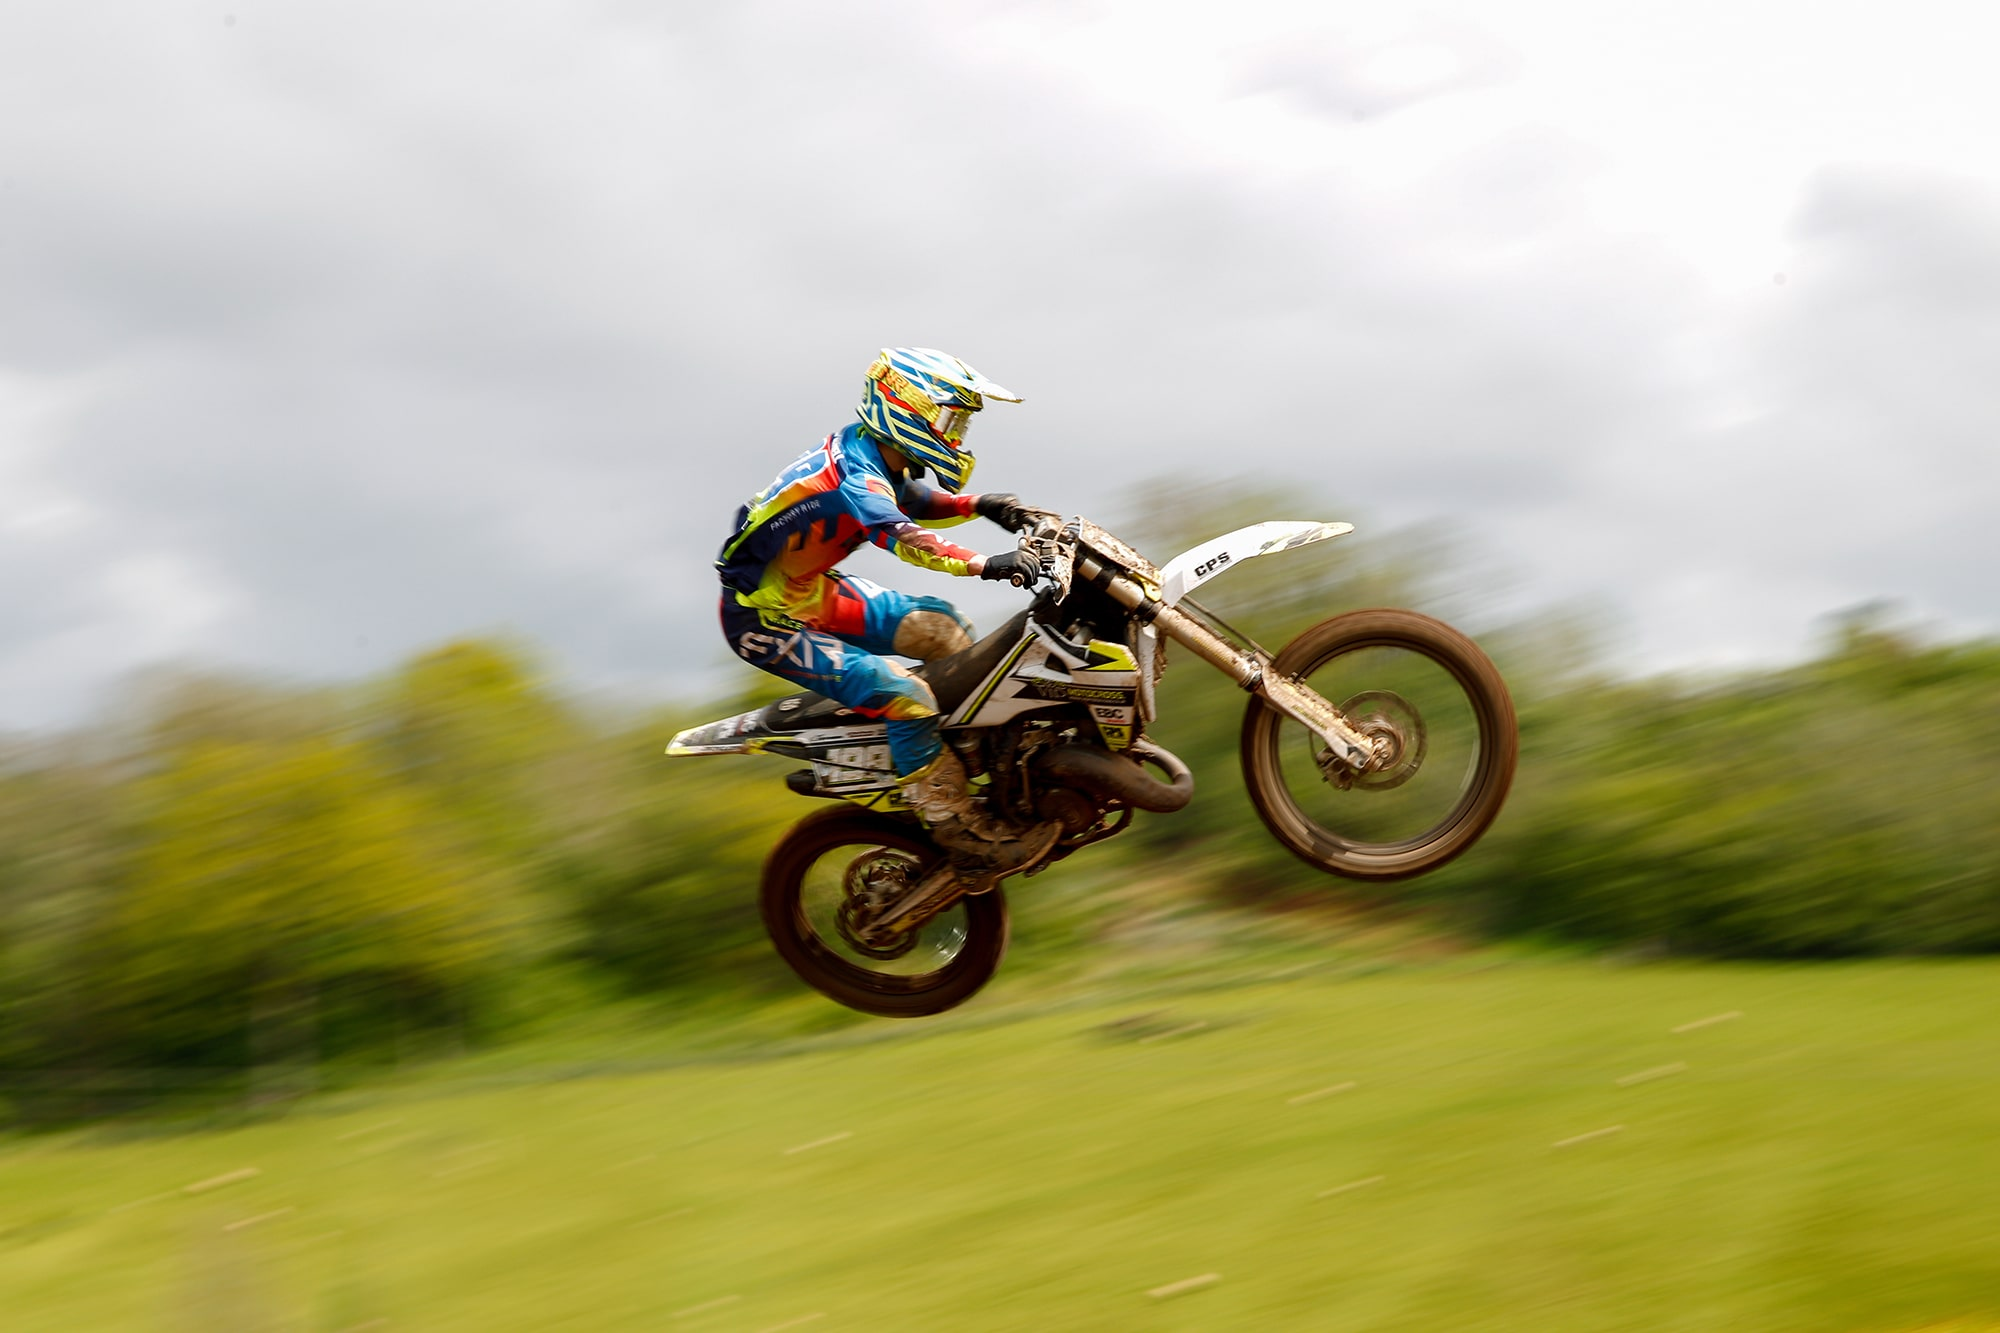 Race Report: MX Rider Lewis Bethell Maintains the Pace in Summer Races